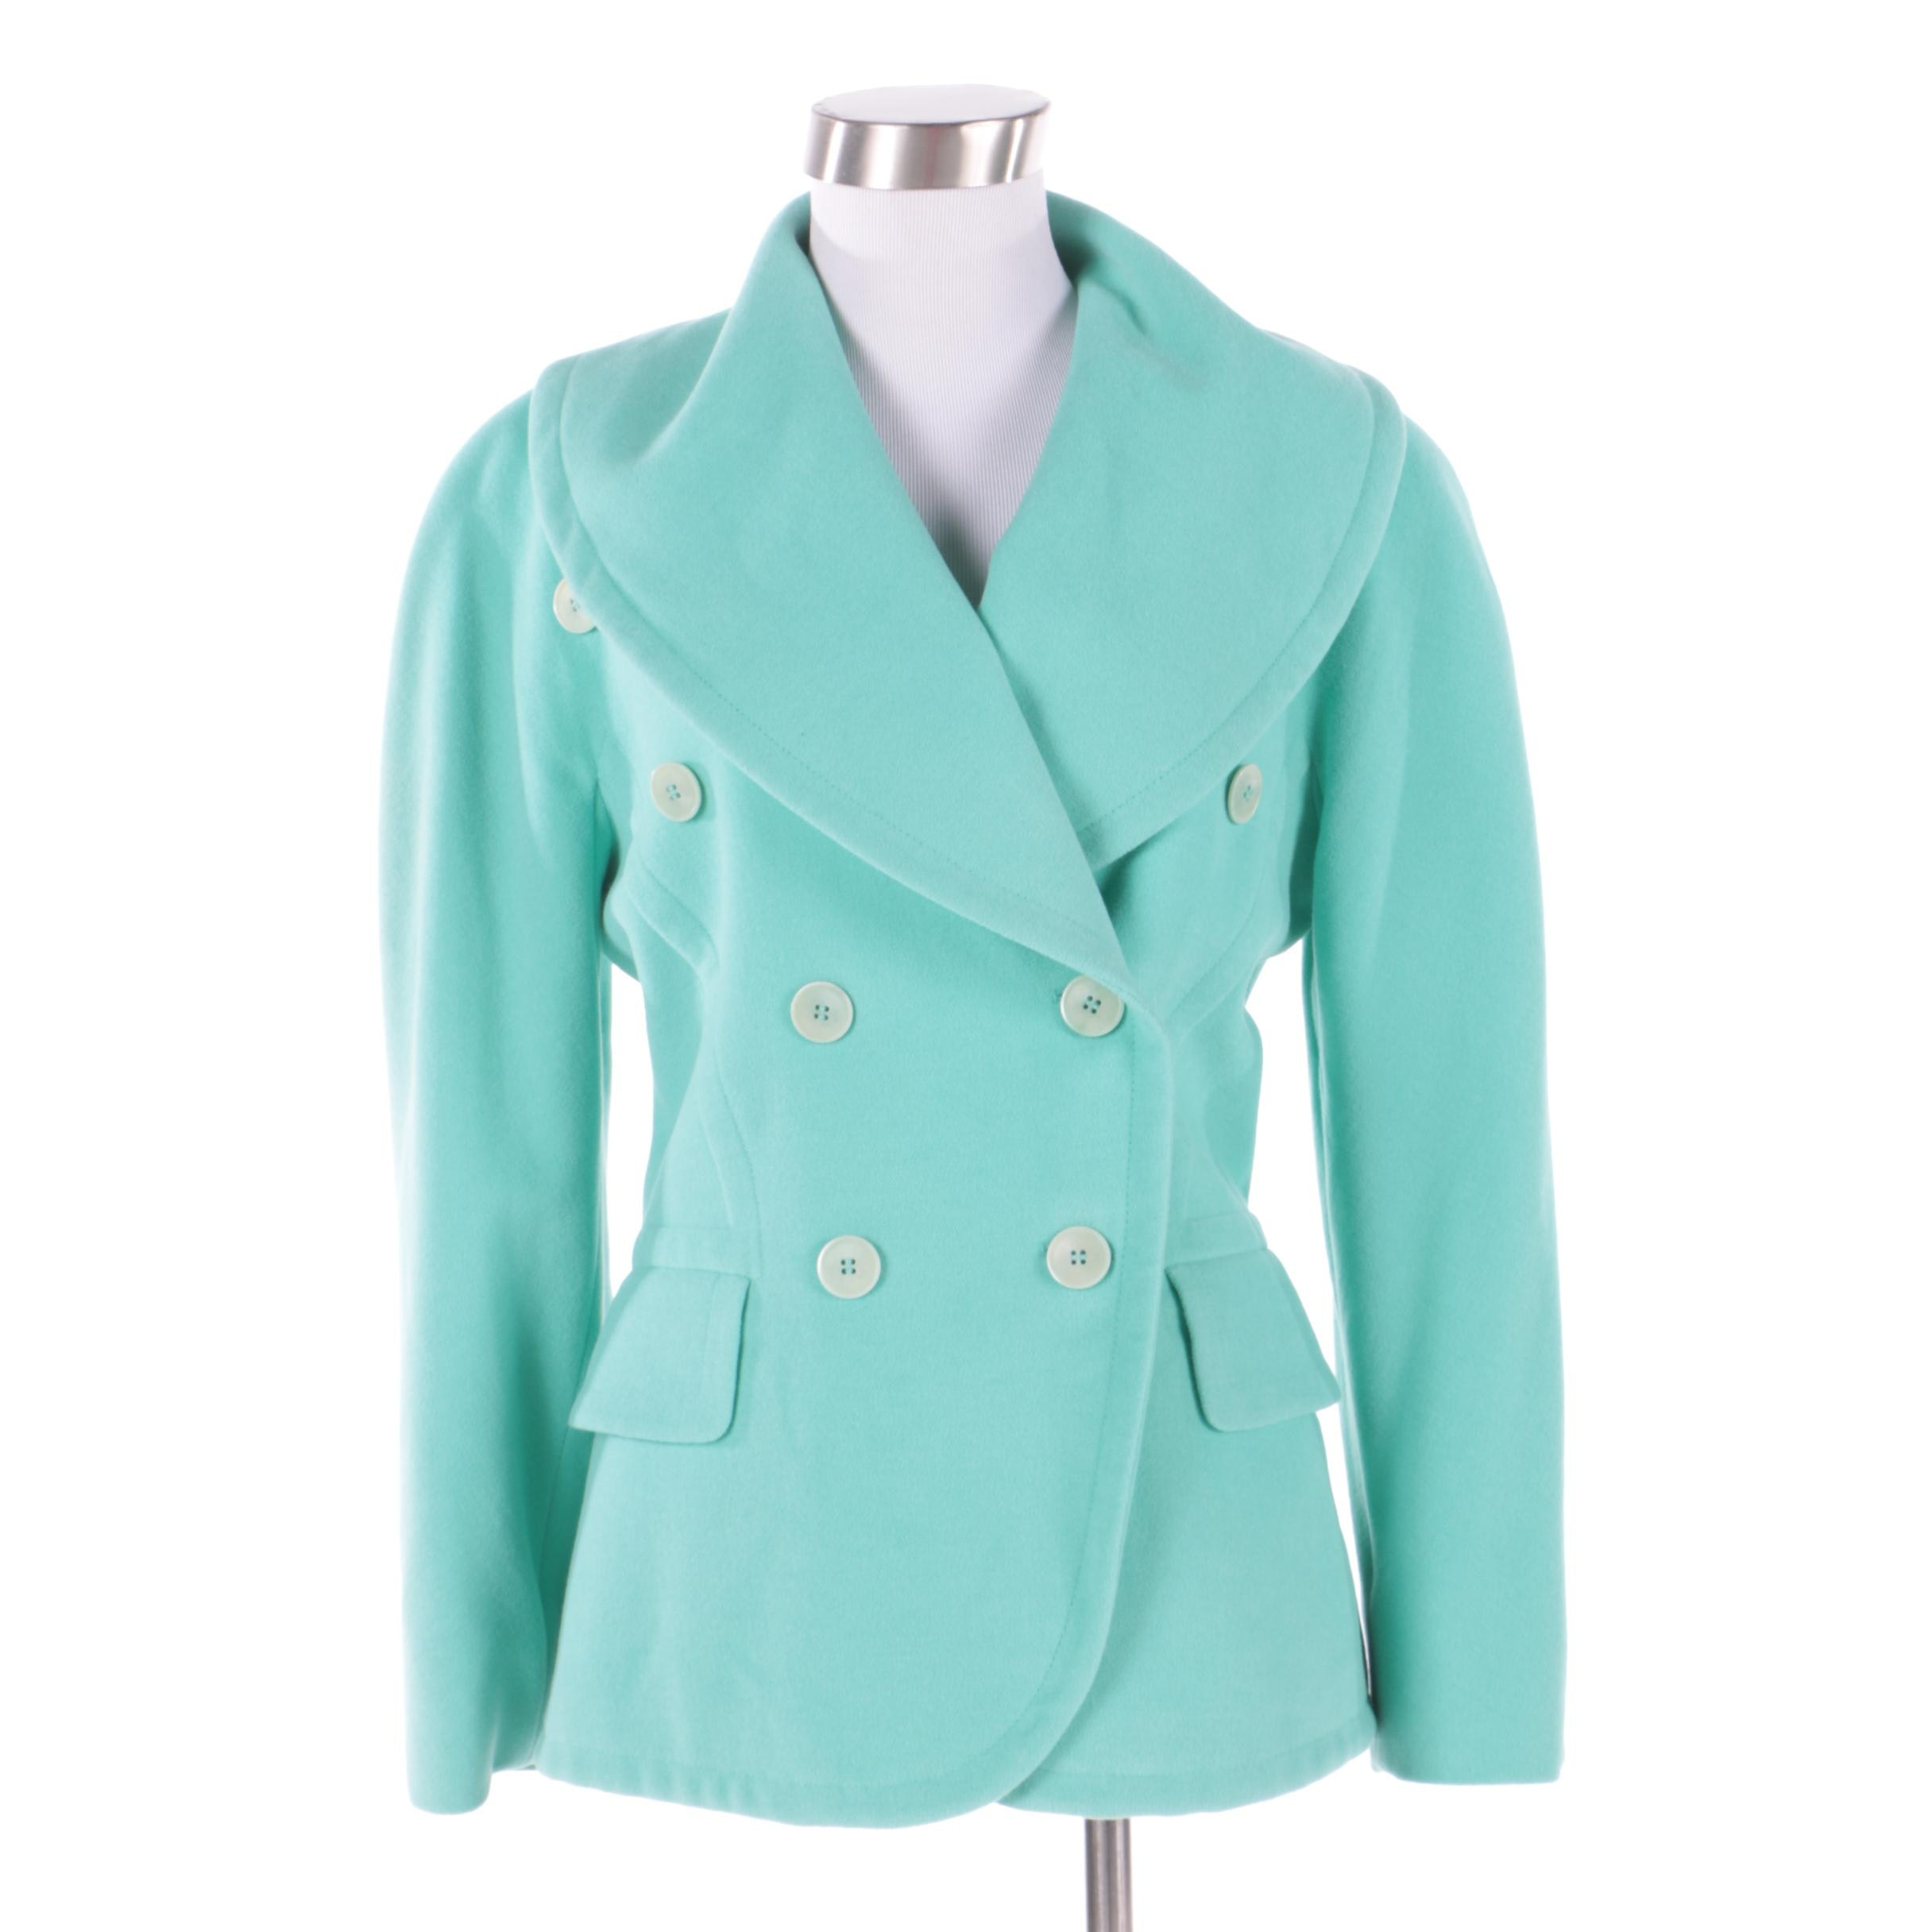 Women's Escada by Margaretha Ley Mint Angora Wool and Cashmere Blend Jacket